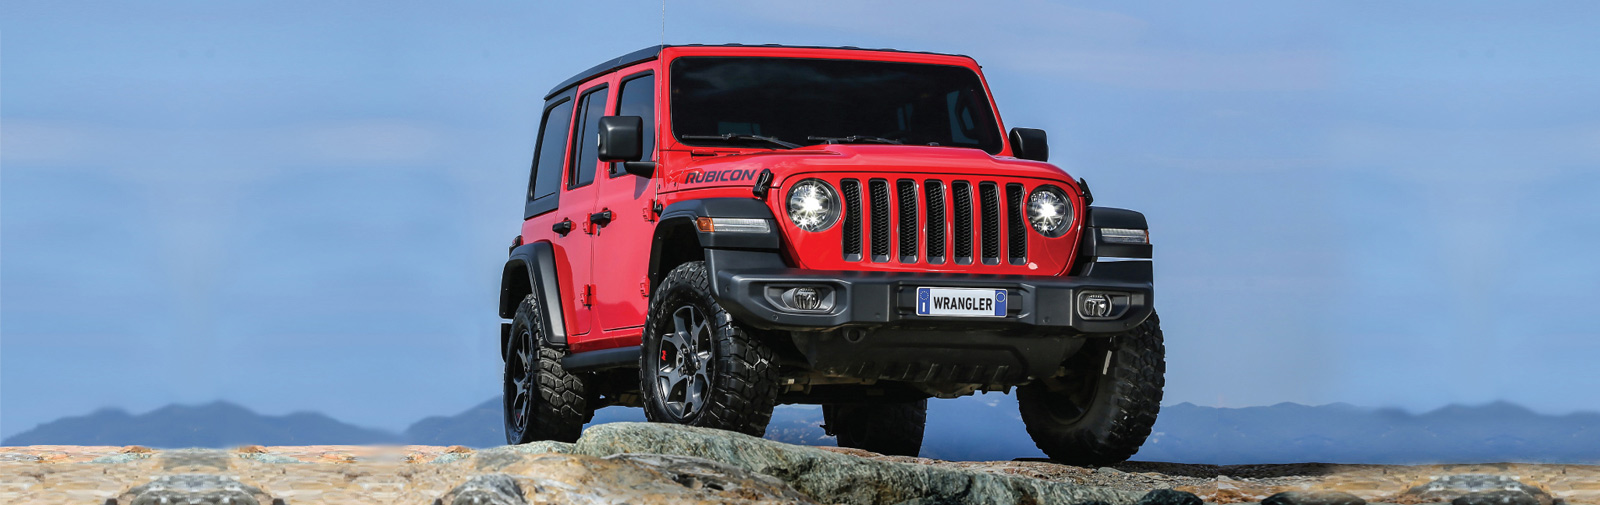 Home Jeep Cyprus Fca Importers